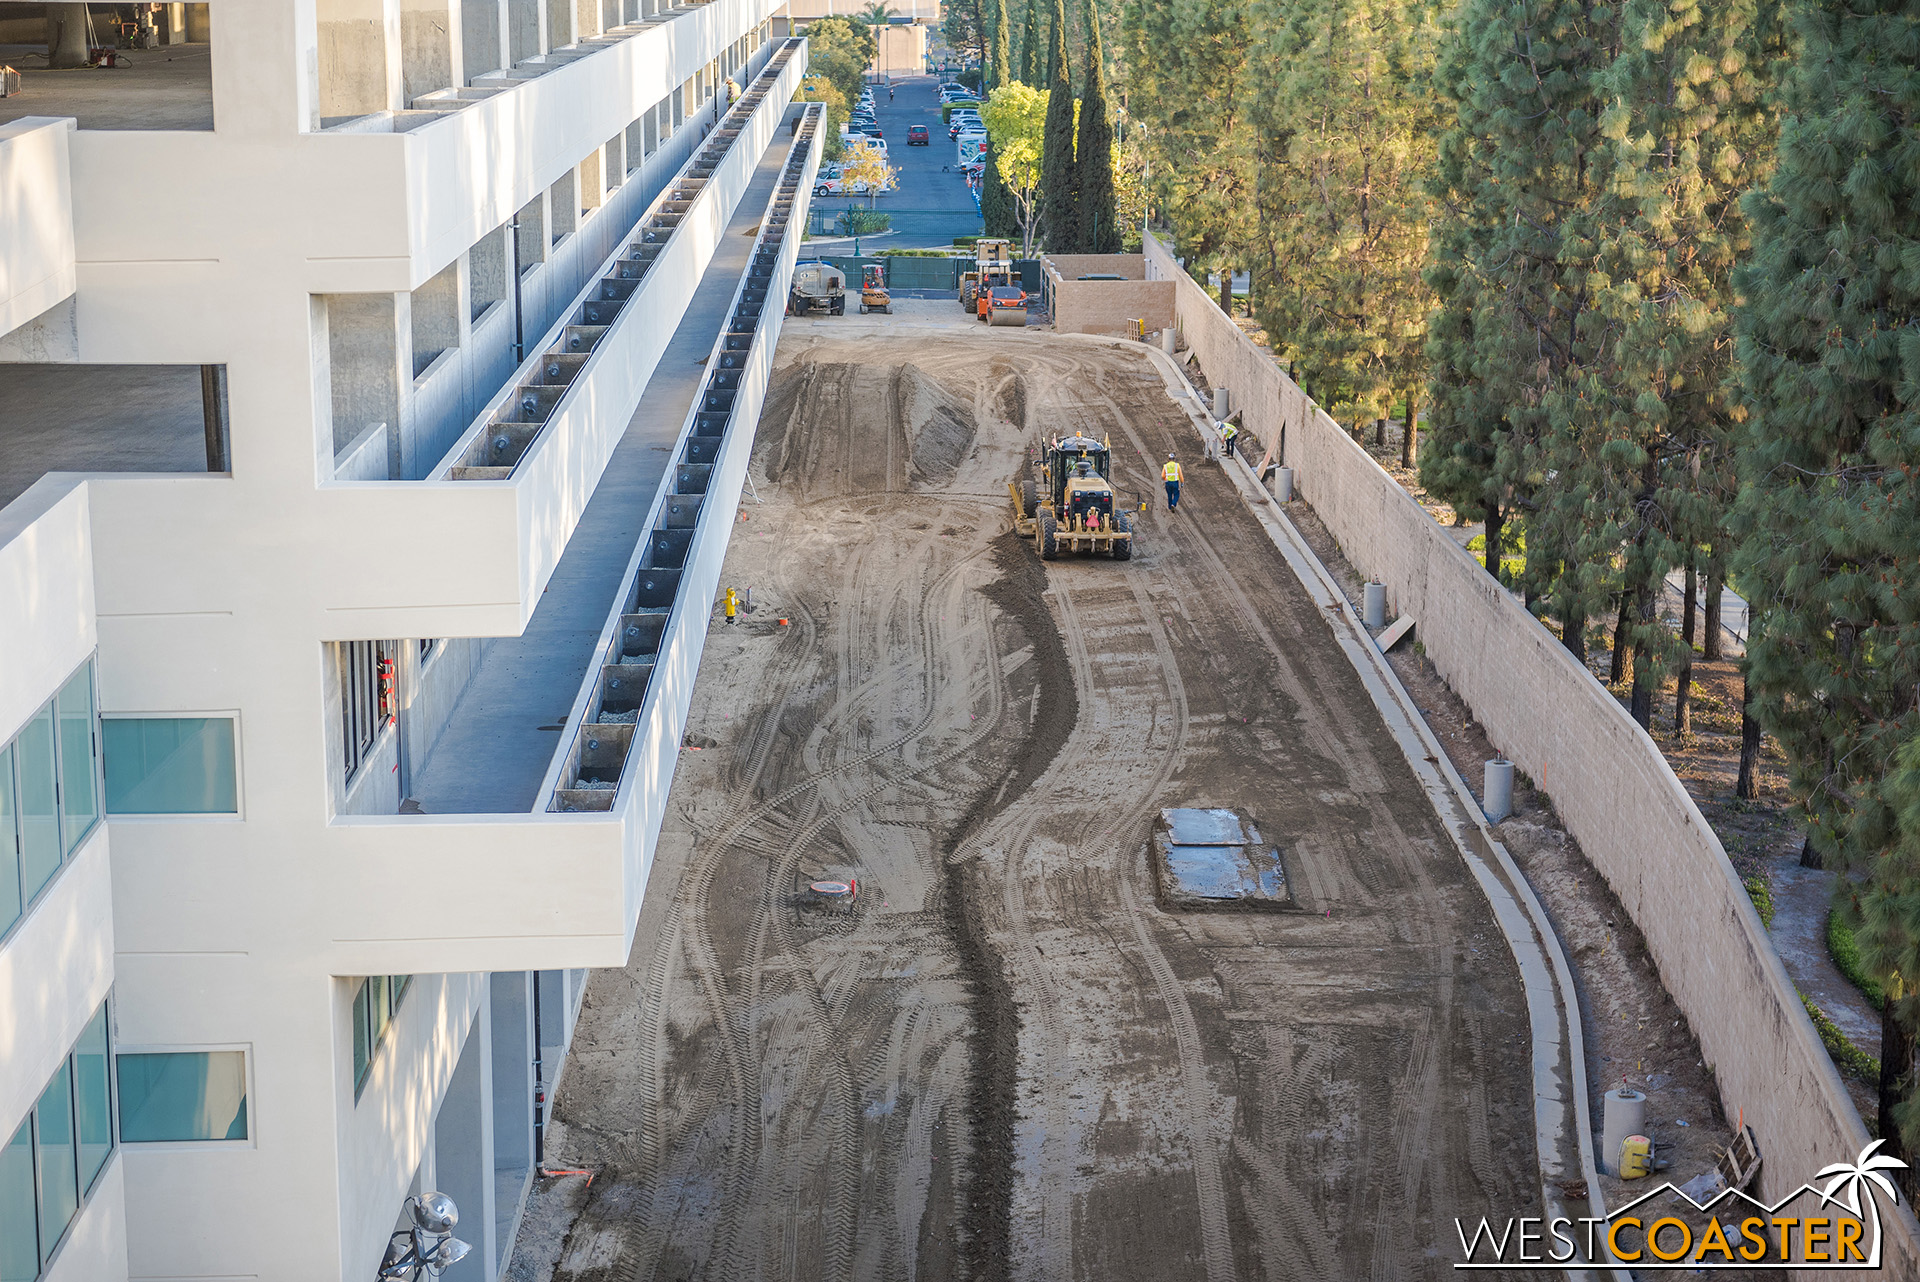 It seems that the terraced planters will make an appearance on this side of parking structure for the expansion too, just like they do now.